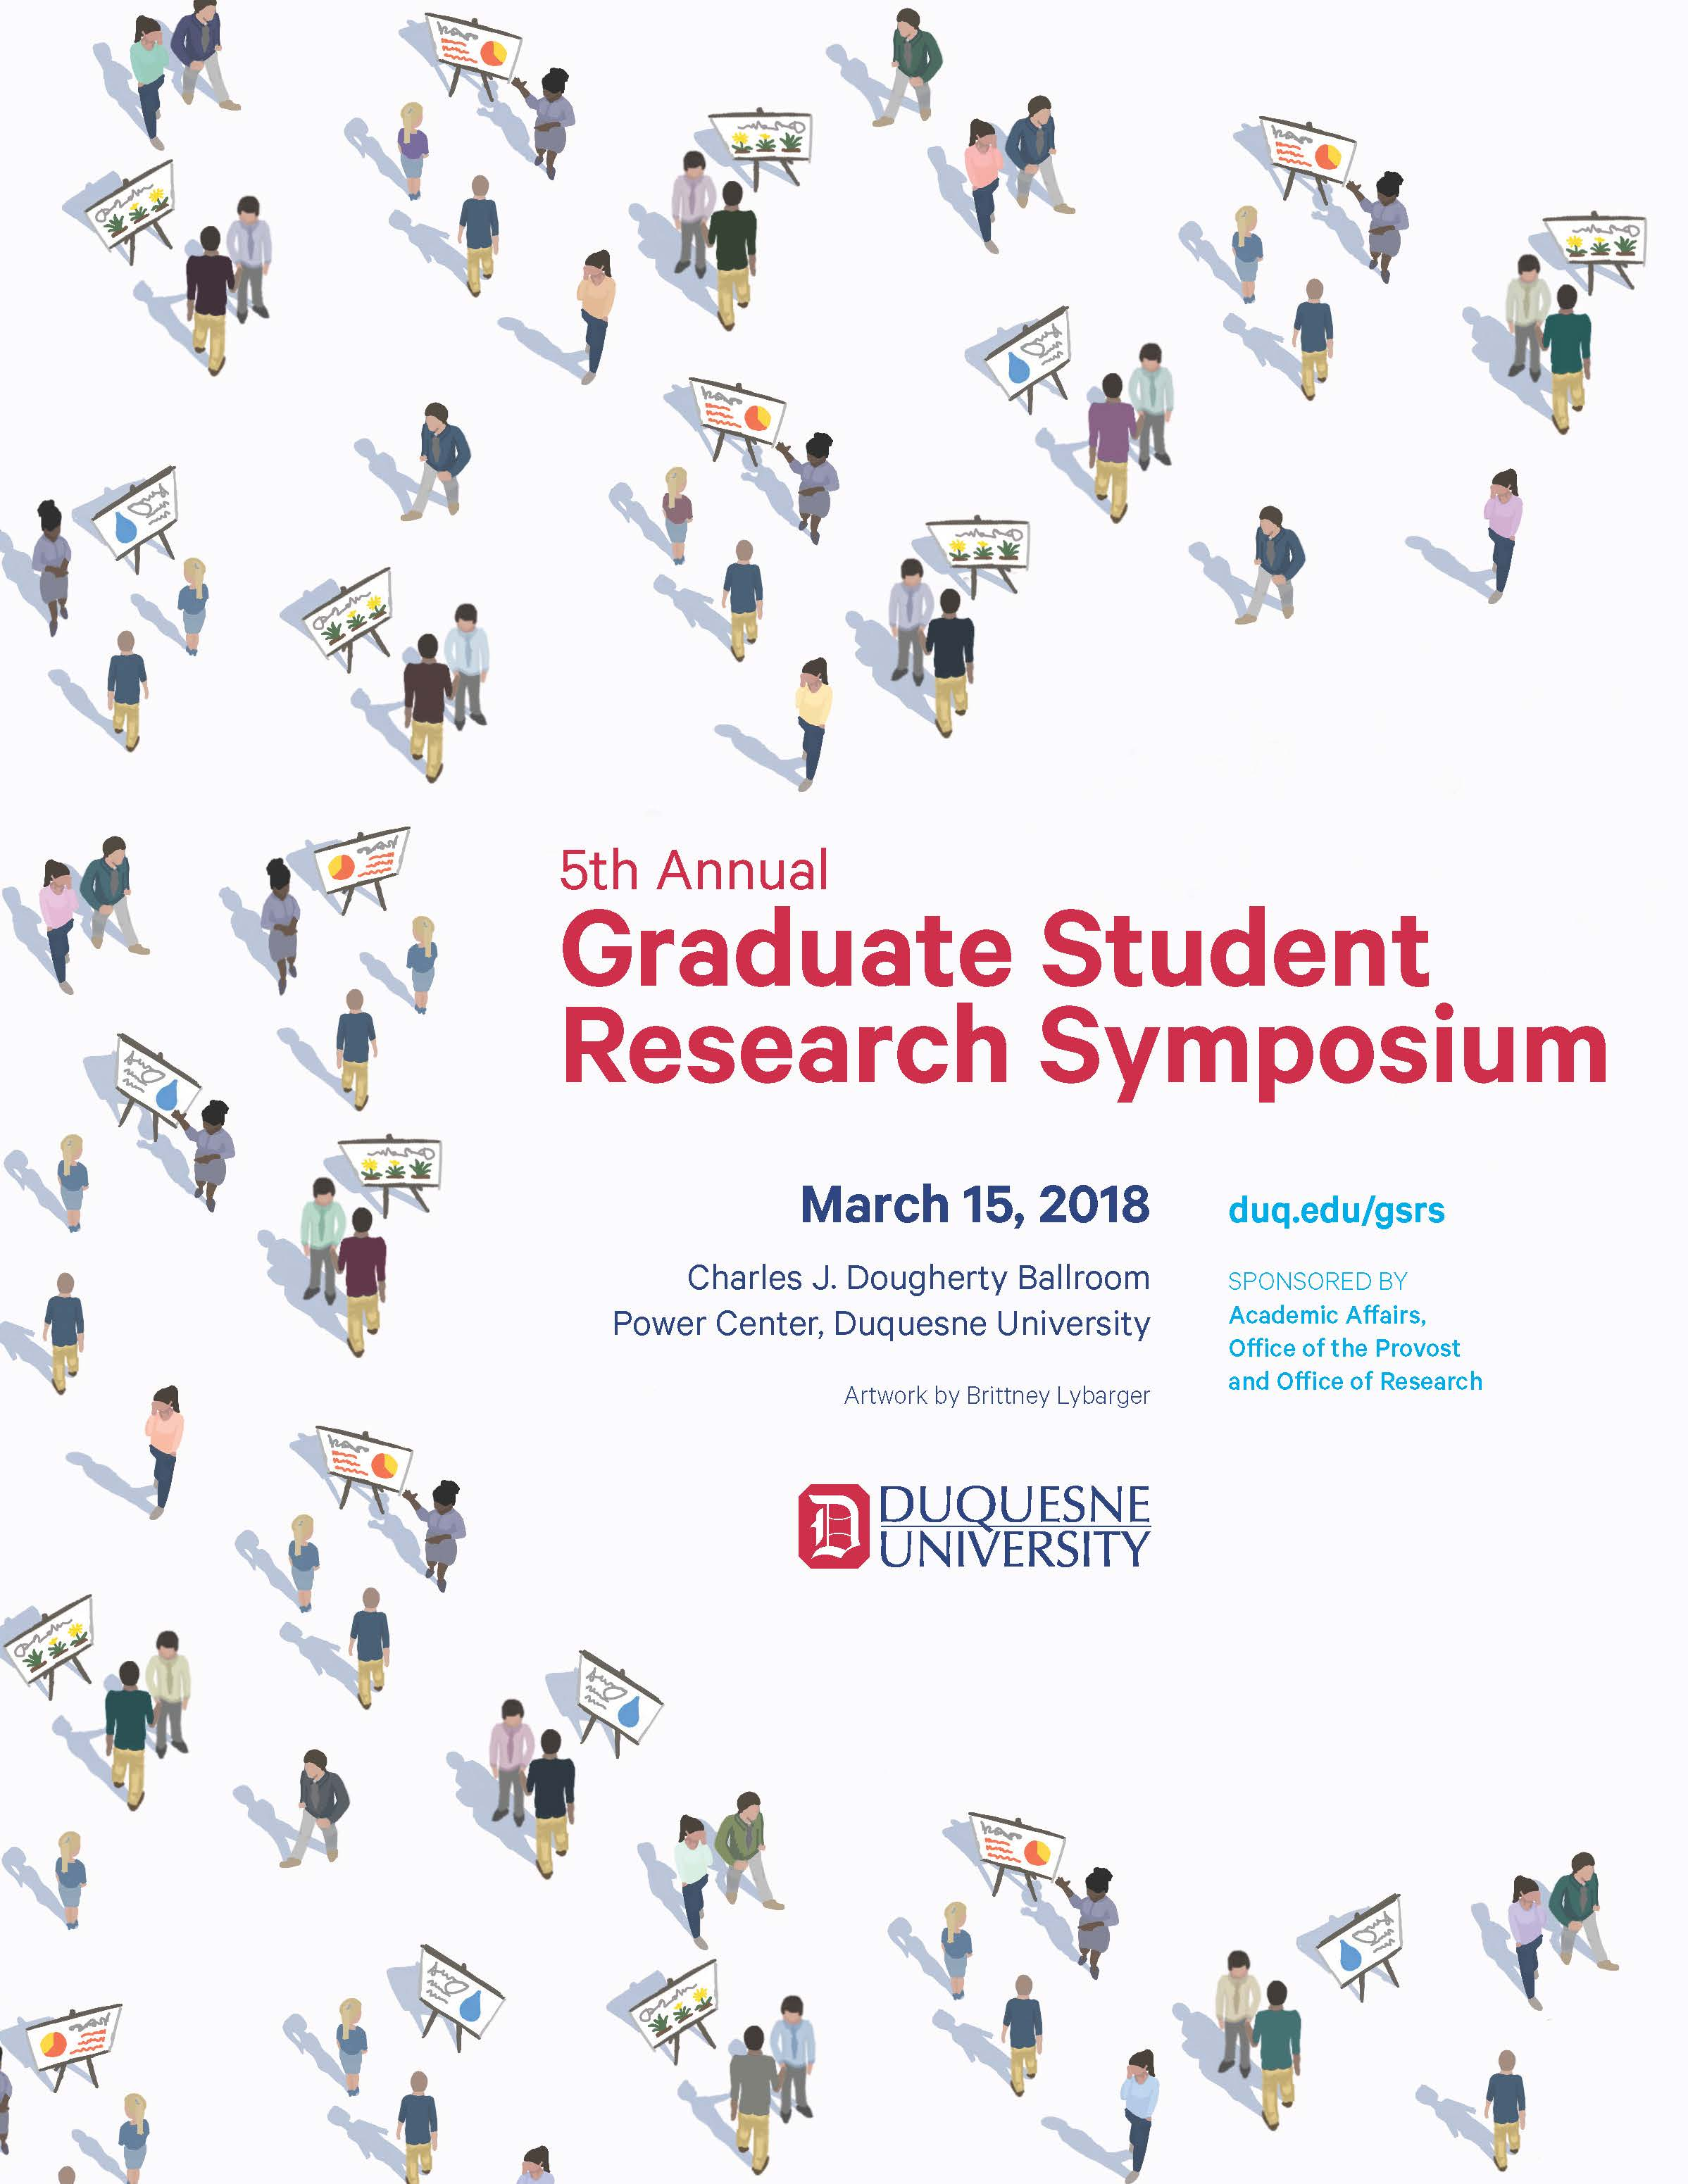 The 5th Annual Graduate Student Research Symposium